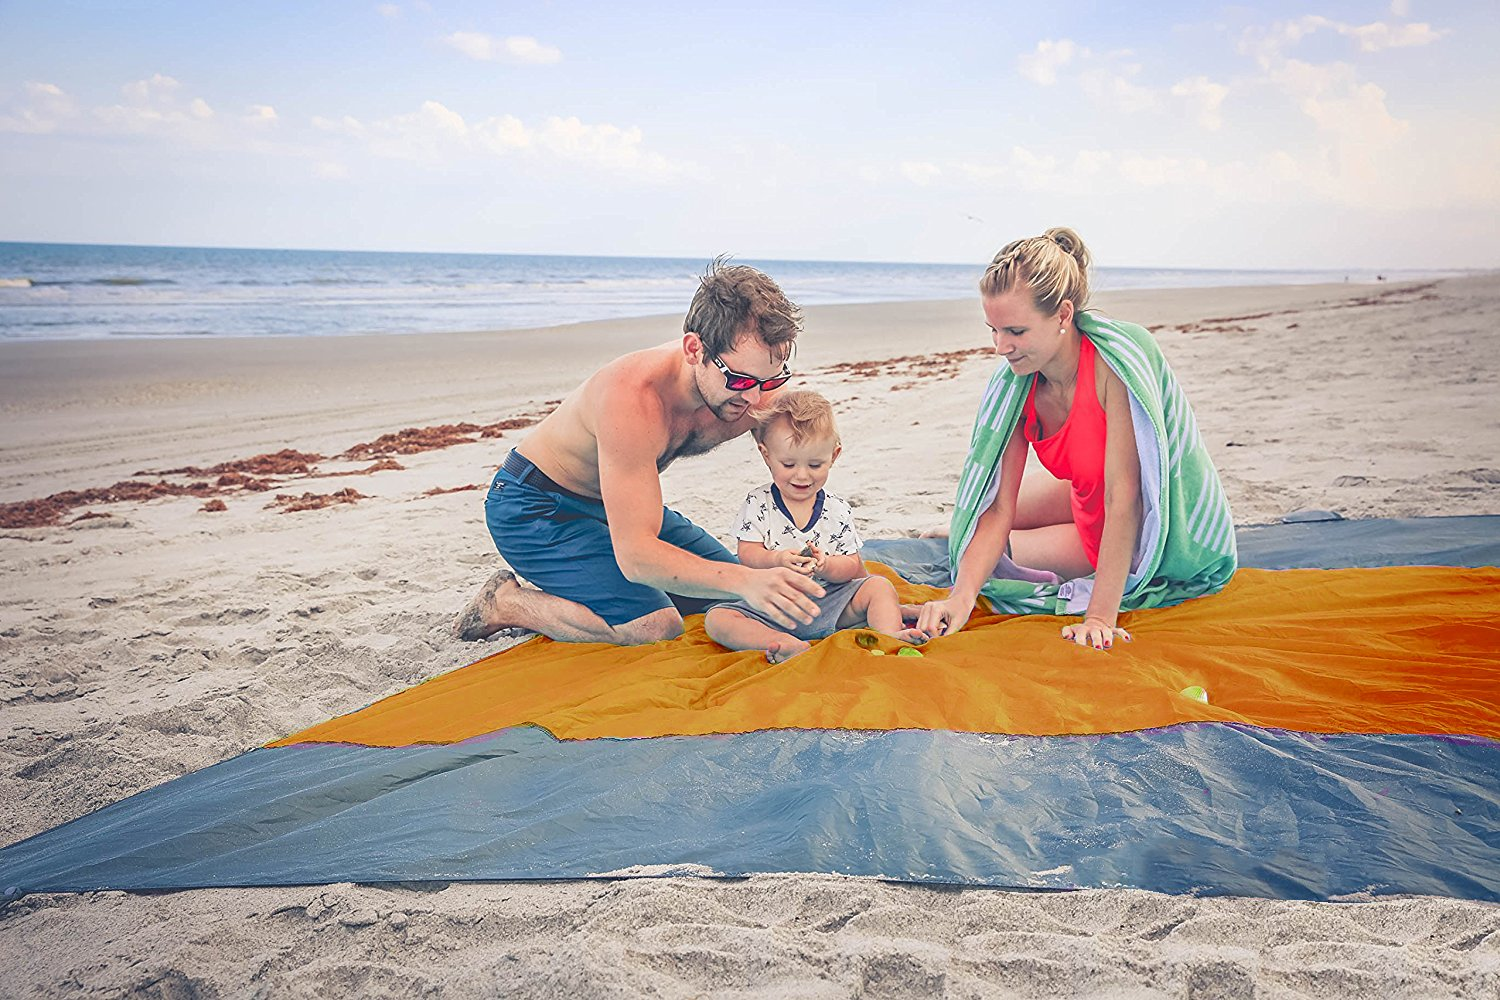 Travel EZ Huge Family Beach Blanket Picnic Blanket by 9 Feet X 7 Feet – 4 Anchor Loops and Stakes 4 Sand Anchors – Parachute Nylon – Zipper Pocket for Valuables